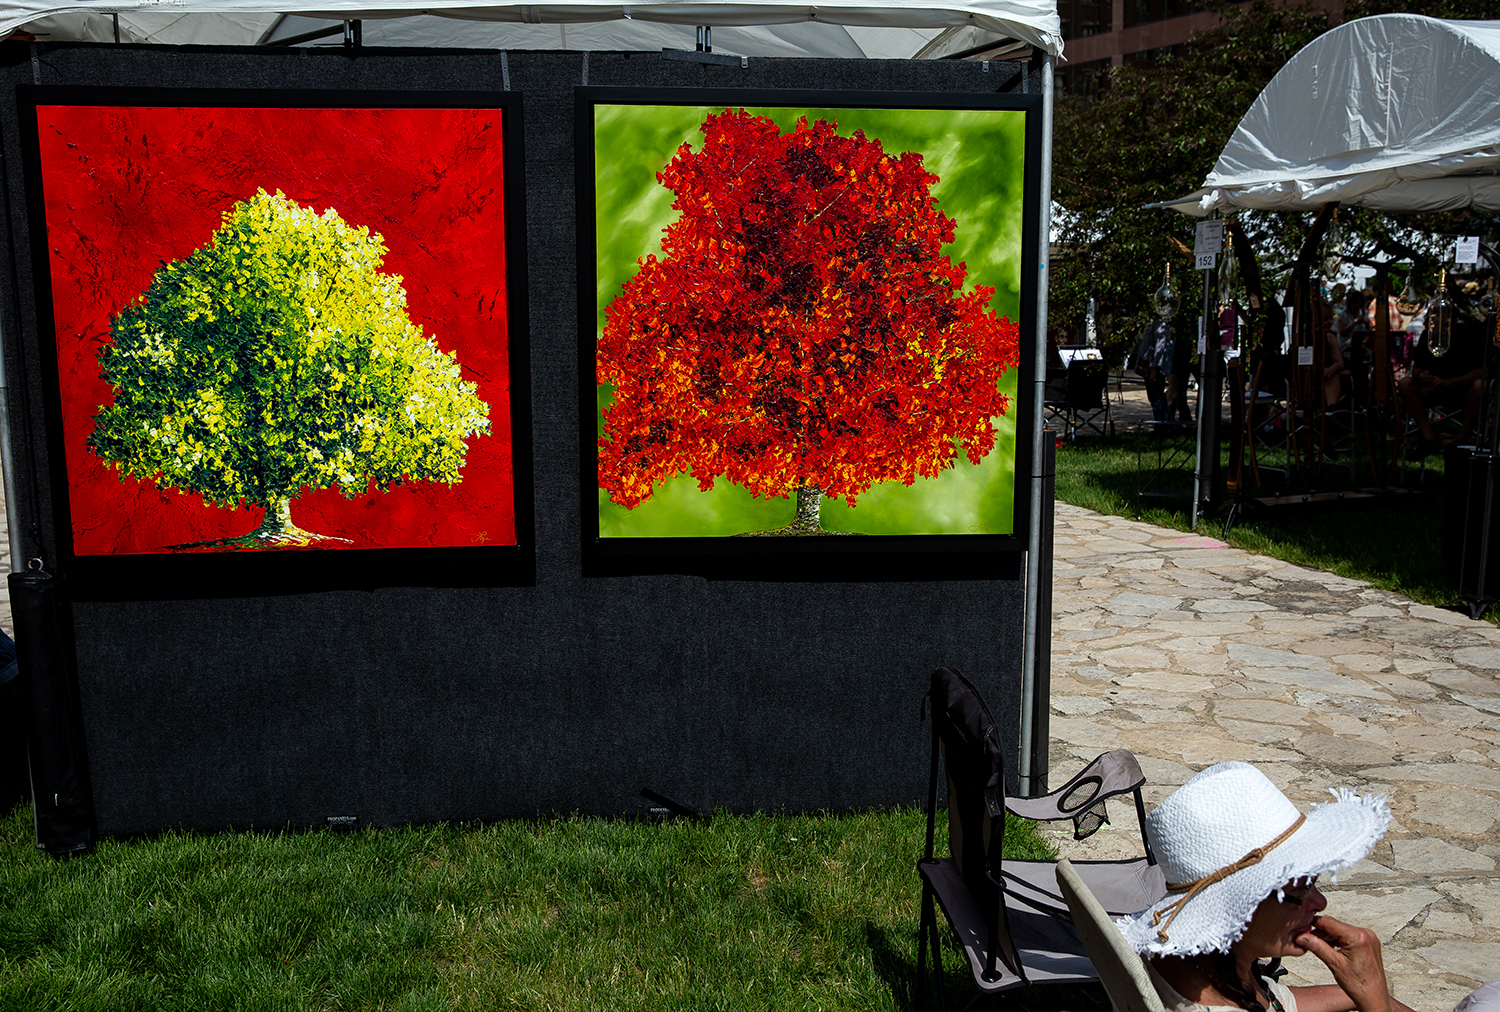 The intense colors of Lilian Delgado's florals pop out at the Old Capitol Art Festival Saturday, May 19, 2018 at the Old State Capitol in Springfield, Ill. This is the River View, Fla. artist's first year at the fair. [Rich Saal/The State Journal-Register]